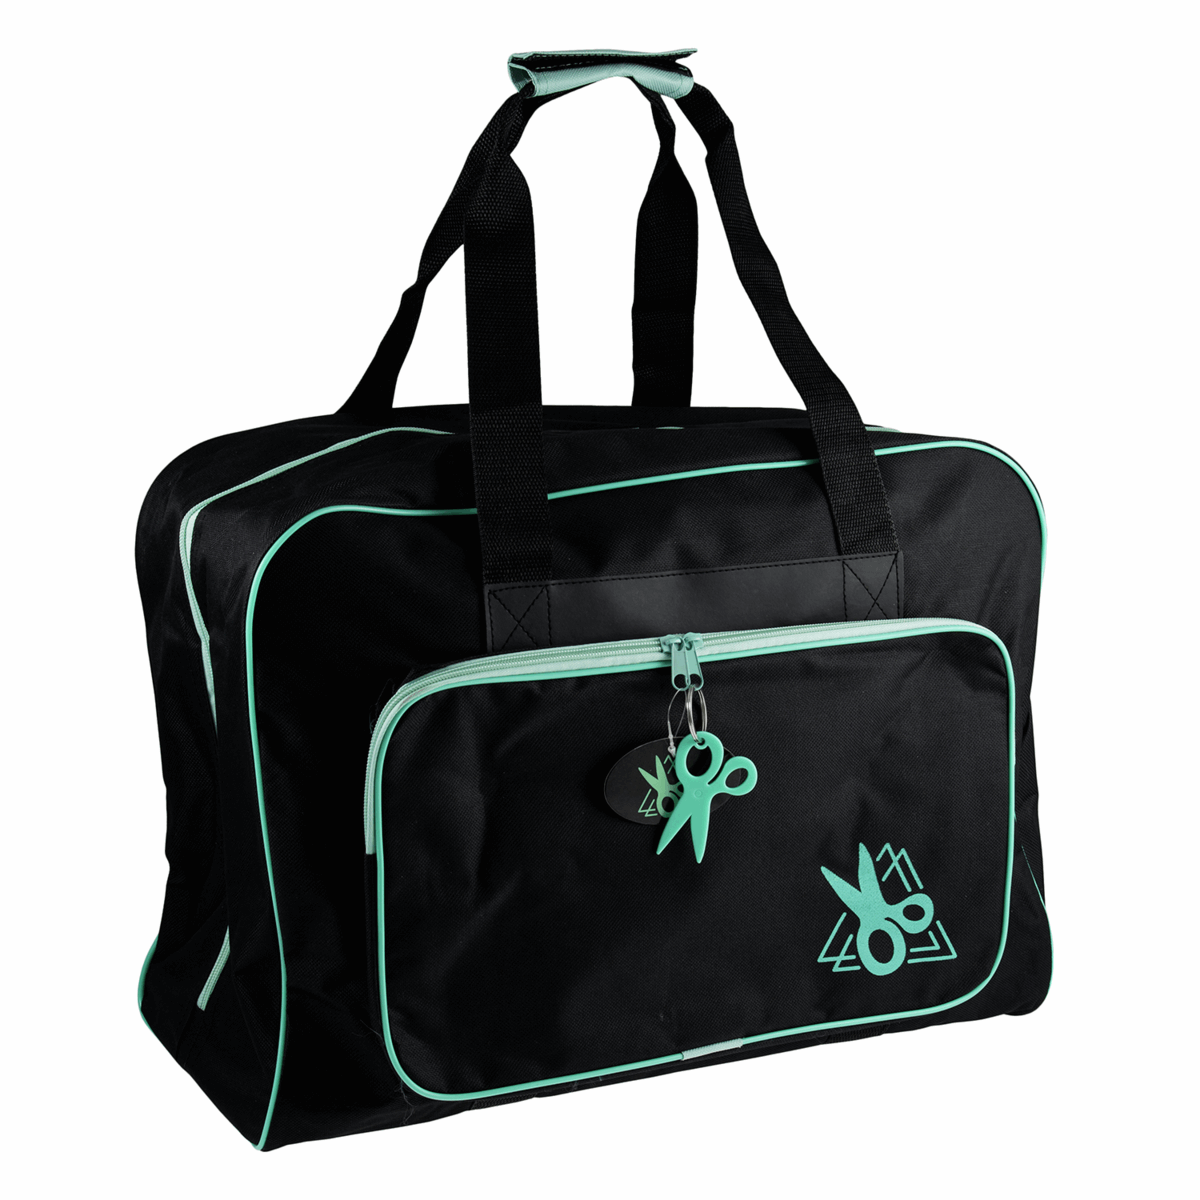 Picture of Sewing Machine Bag: Black/Turquoise